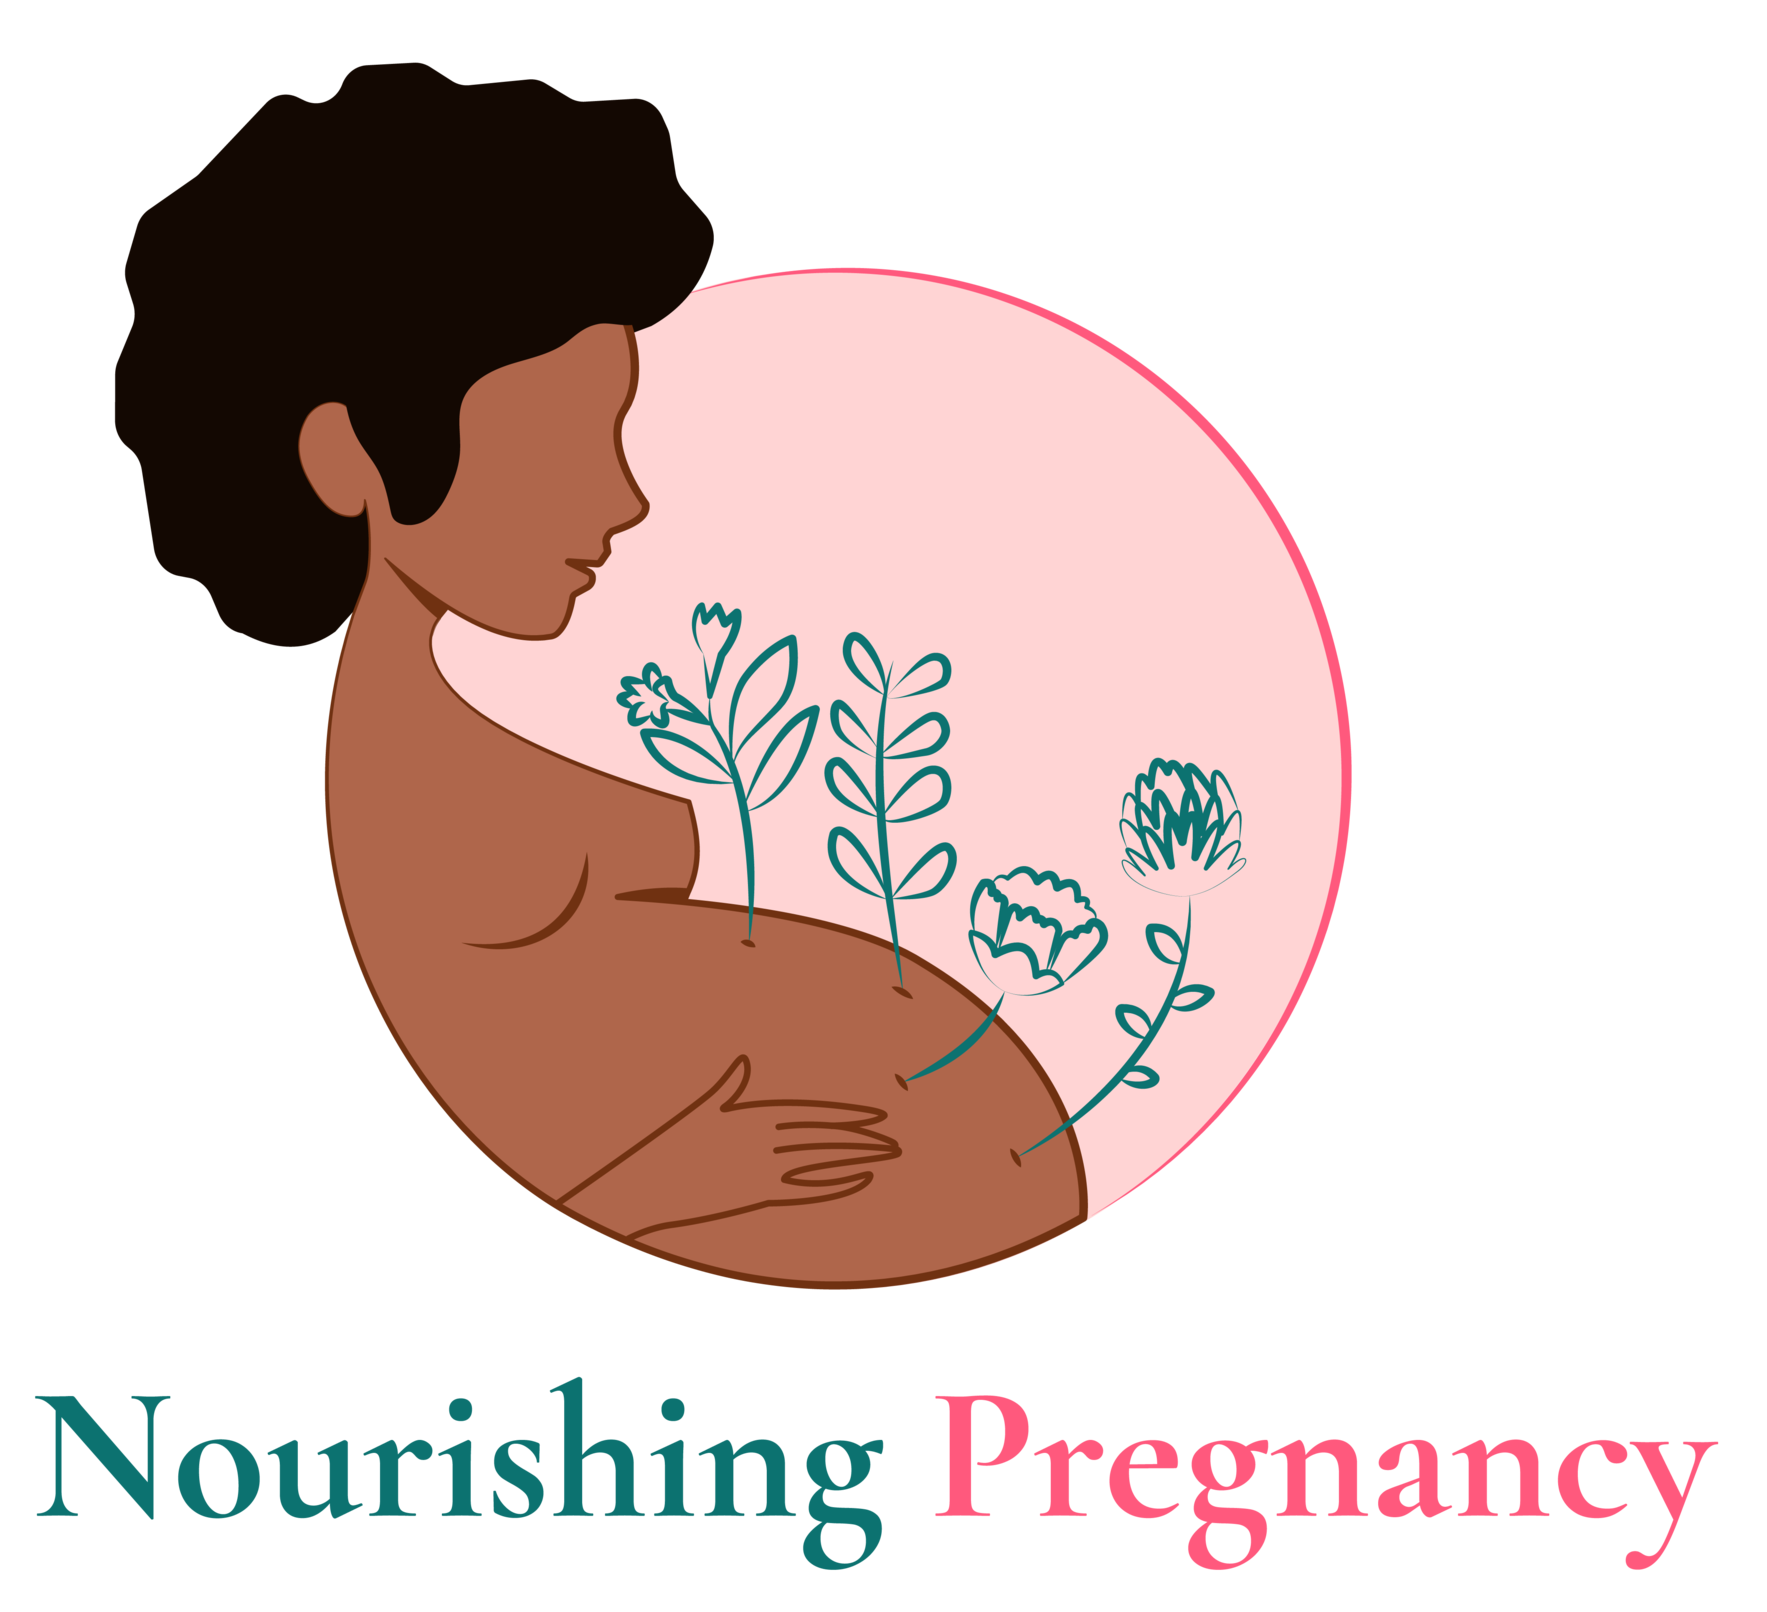 Support Black and Latinx families through pregnancy, birth, and beyond image